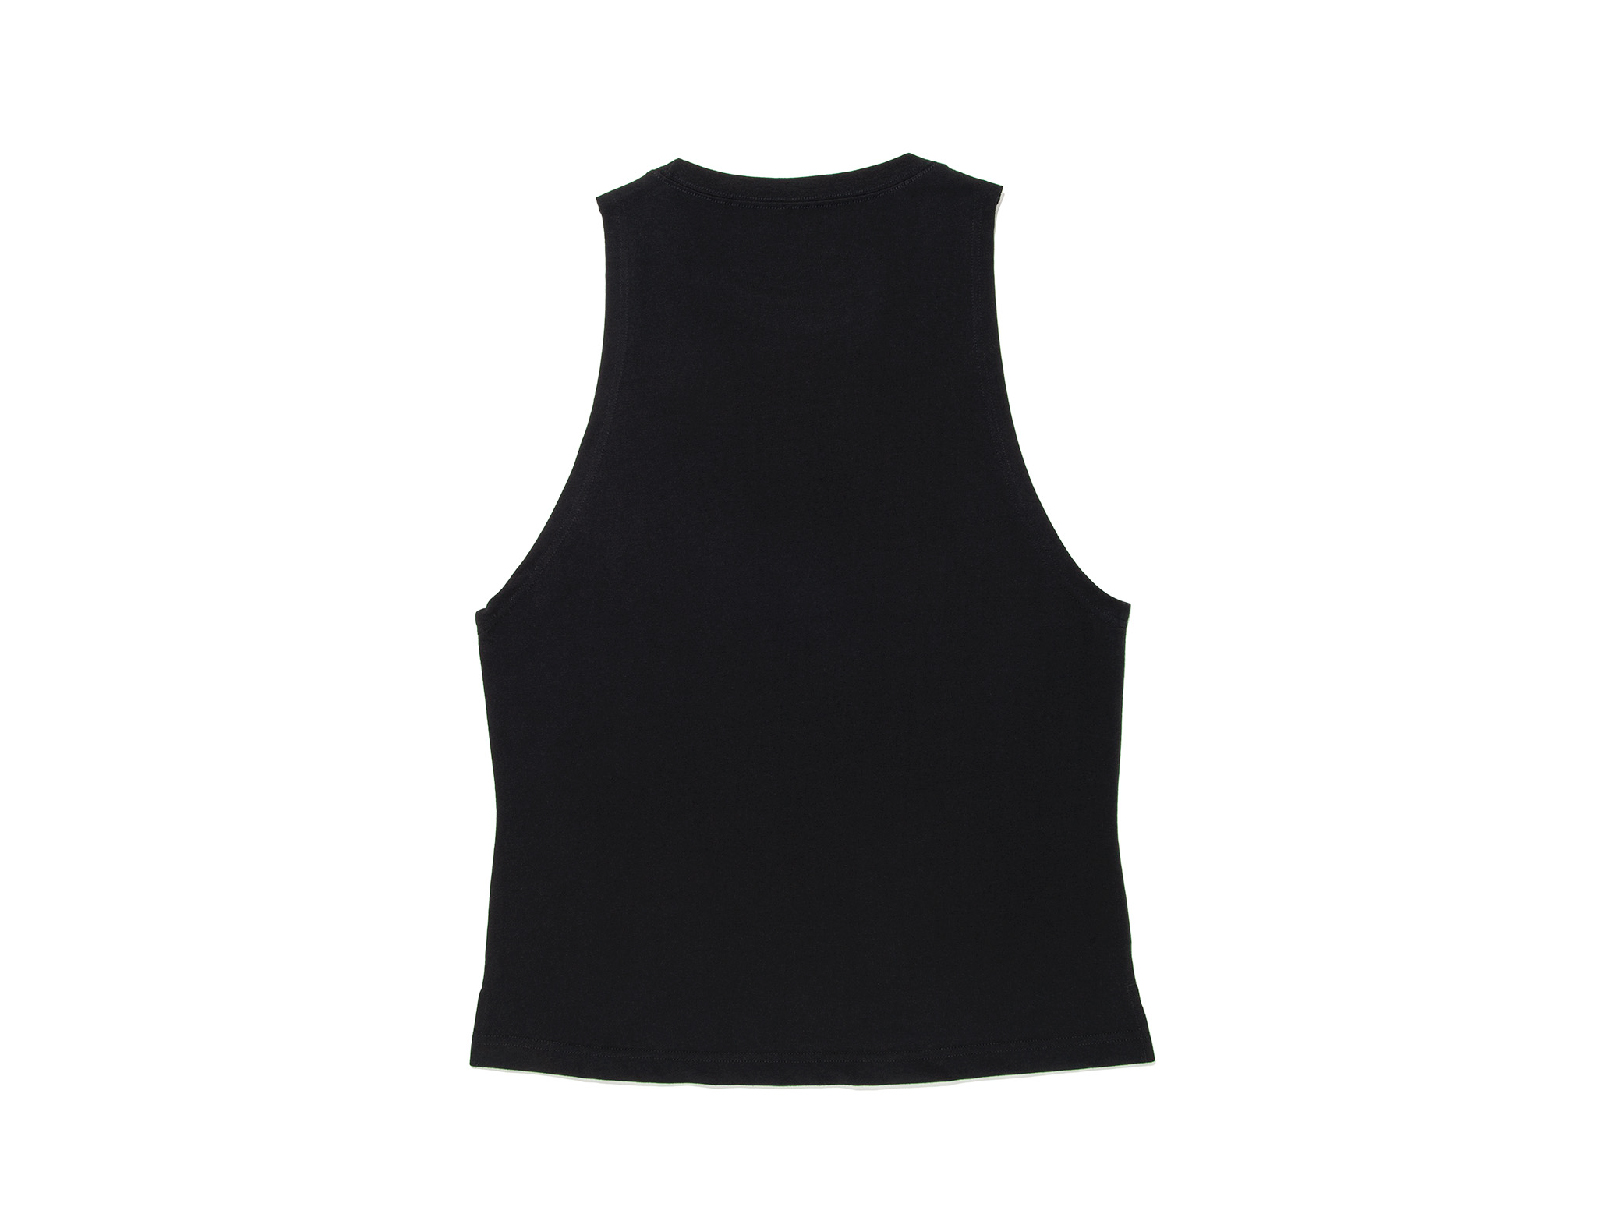 COTTON DRIPPING LOGO WIDE ARMHOLE TANK TOP